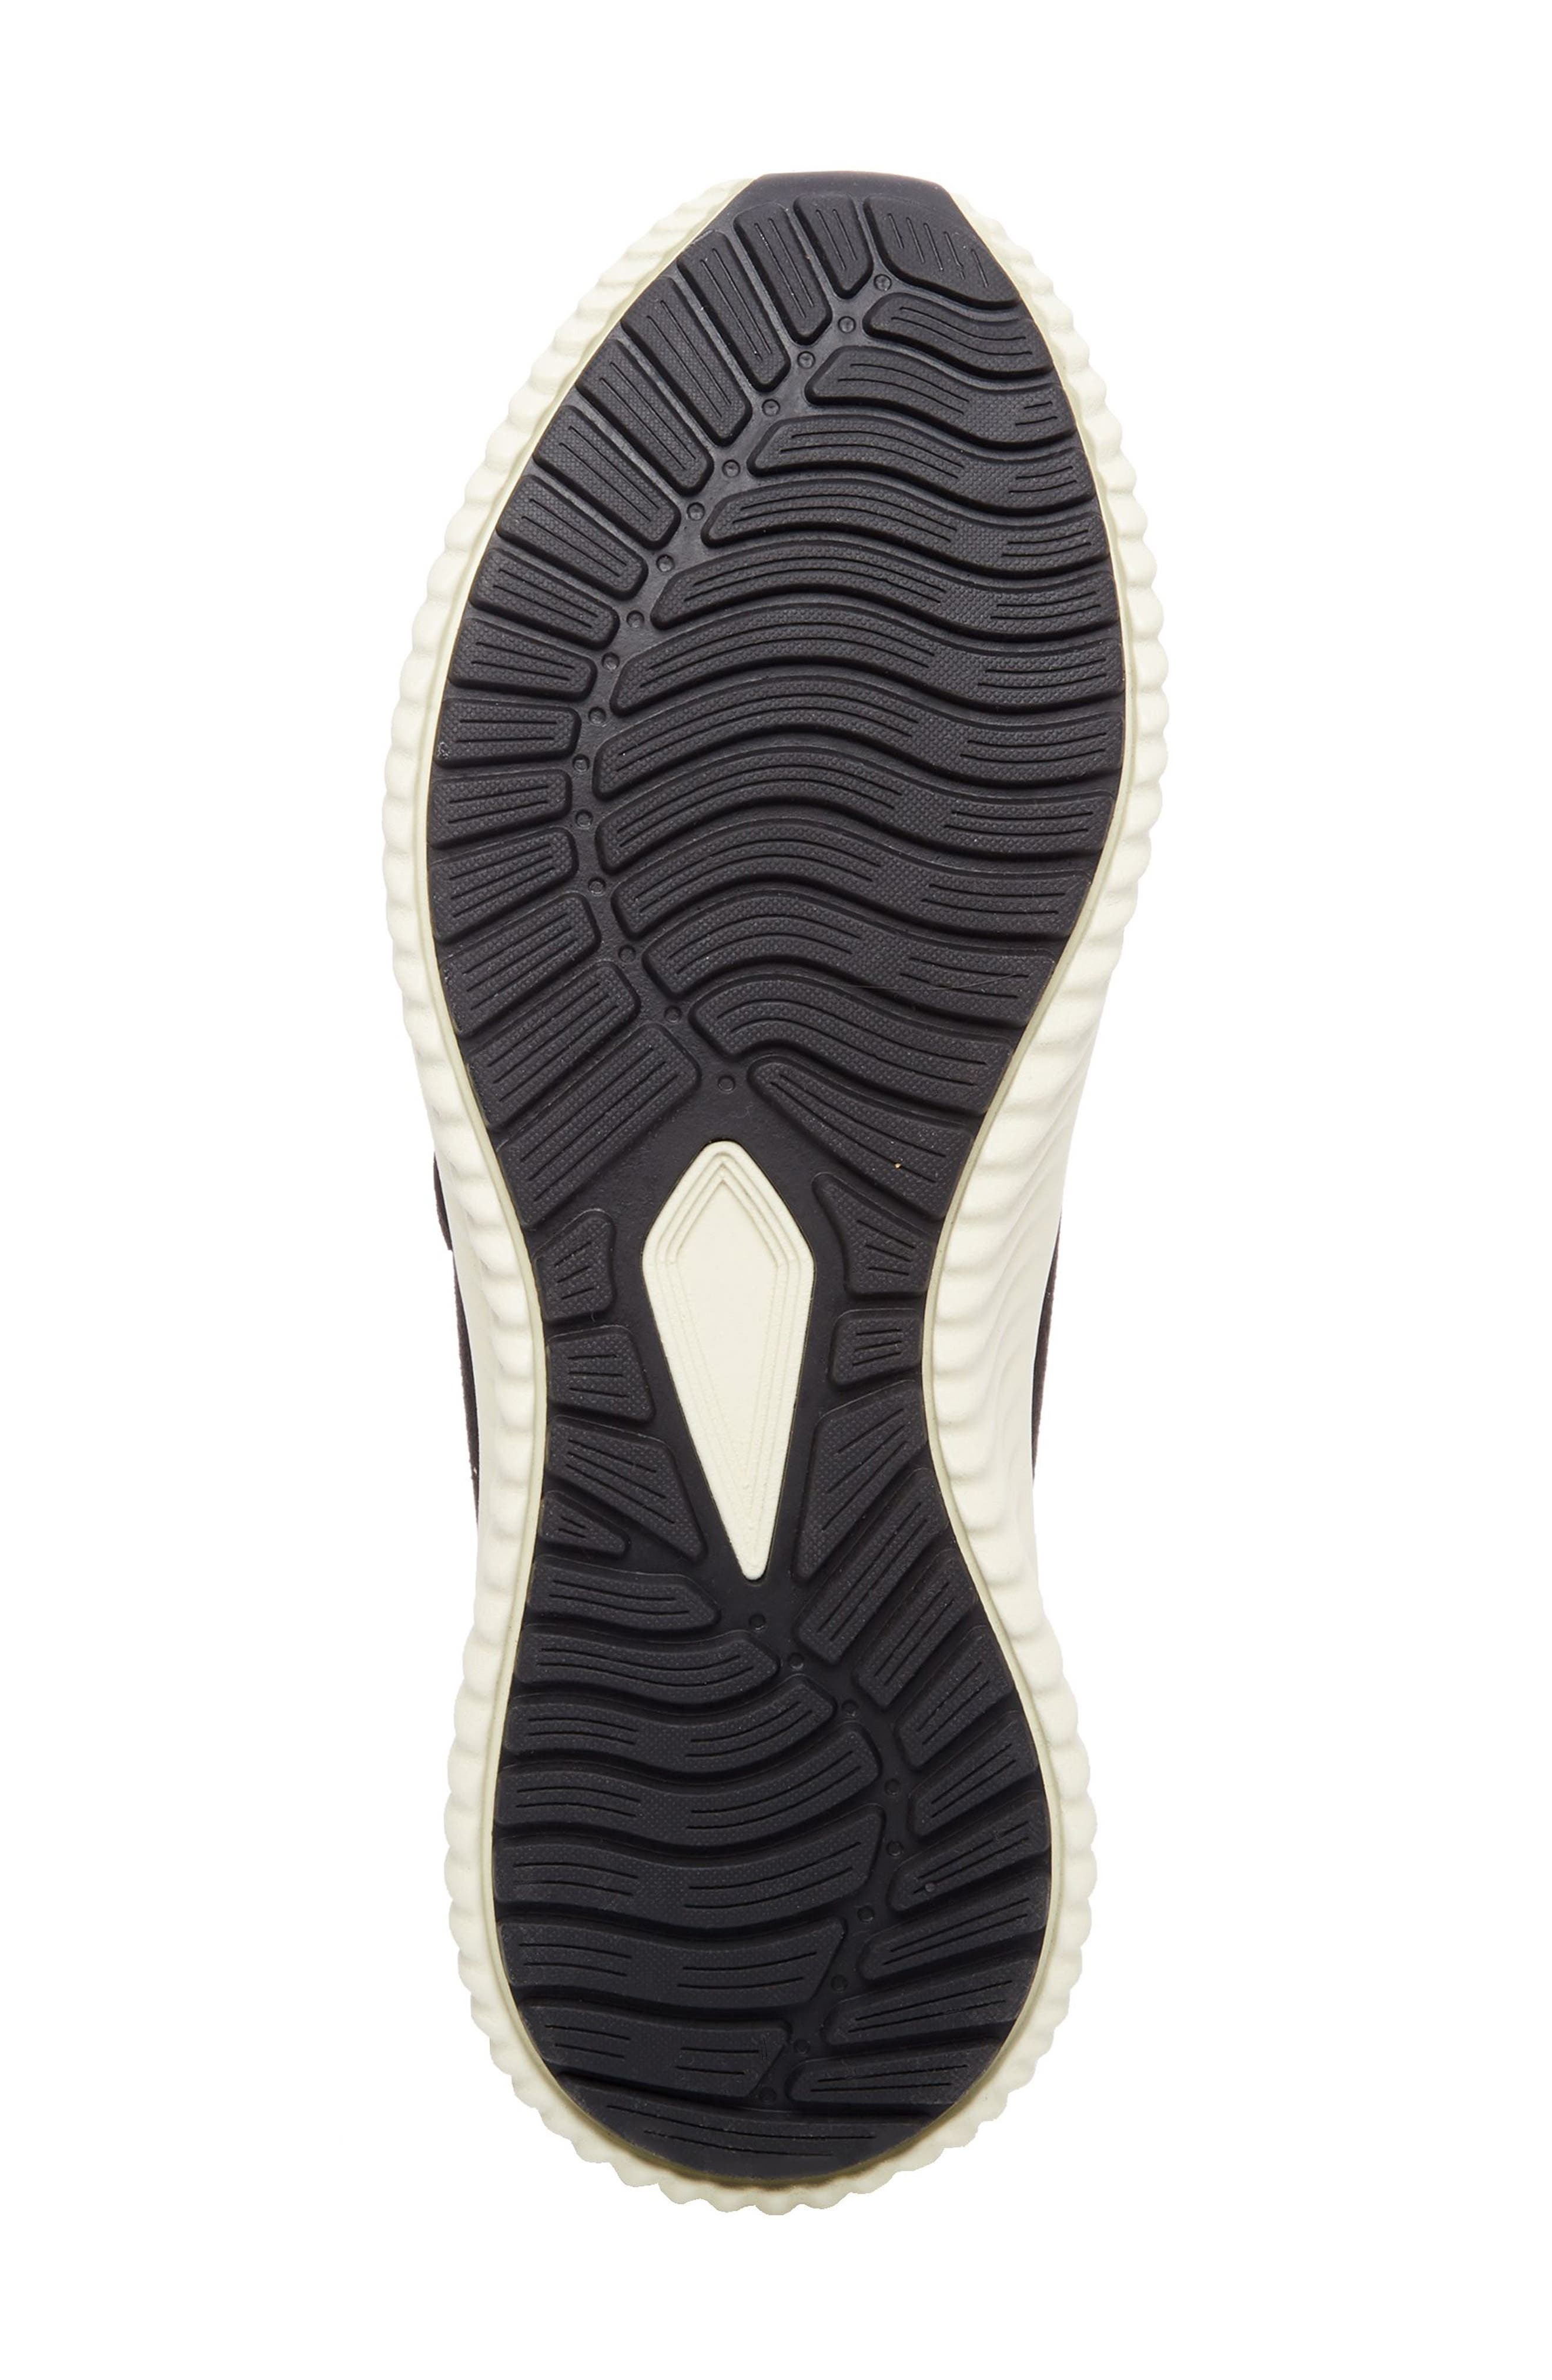 Rolf Low Top Sneaker,                             Alternate thumbnail 6, color,                             BLACK LEATHER